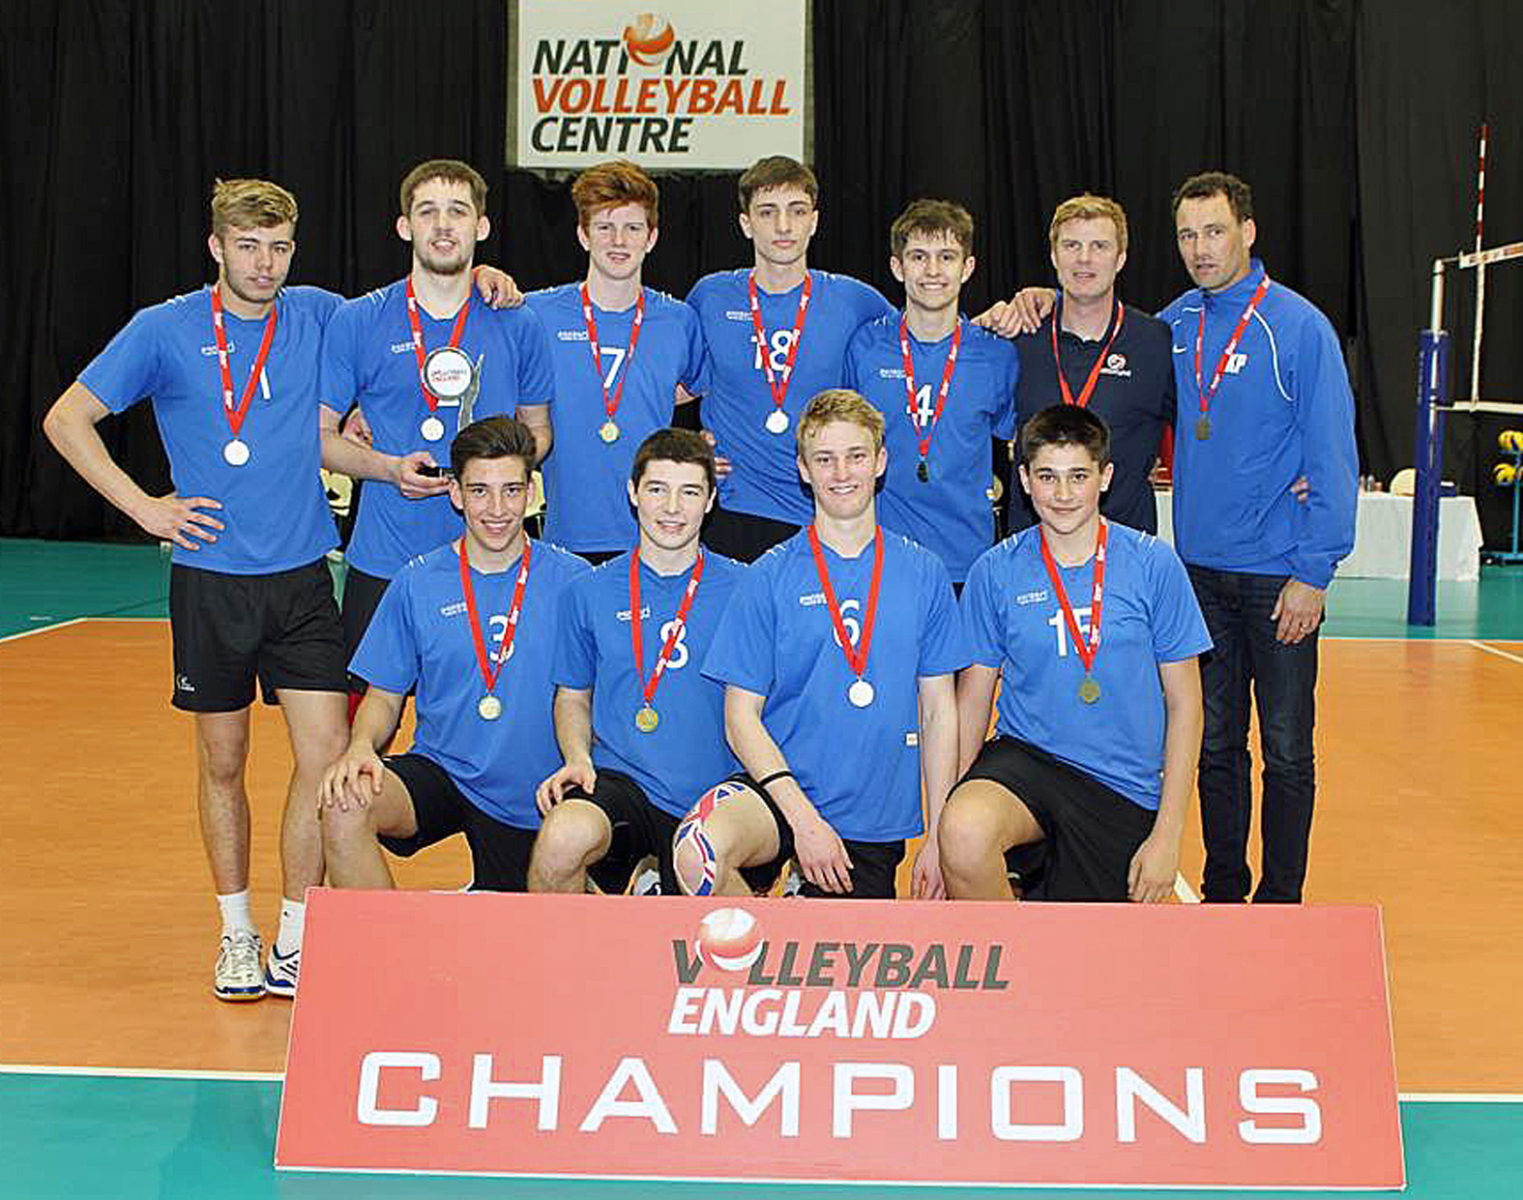 TRIUMPH. The Wessex/LeAF U18 boys team who won the National Volleyball Cup finals.